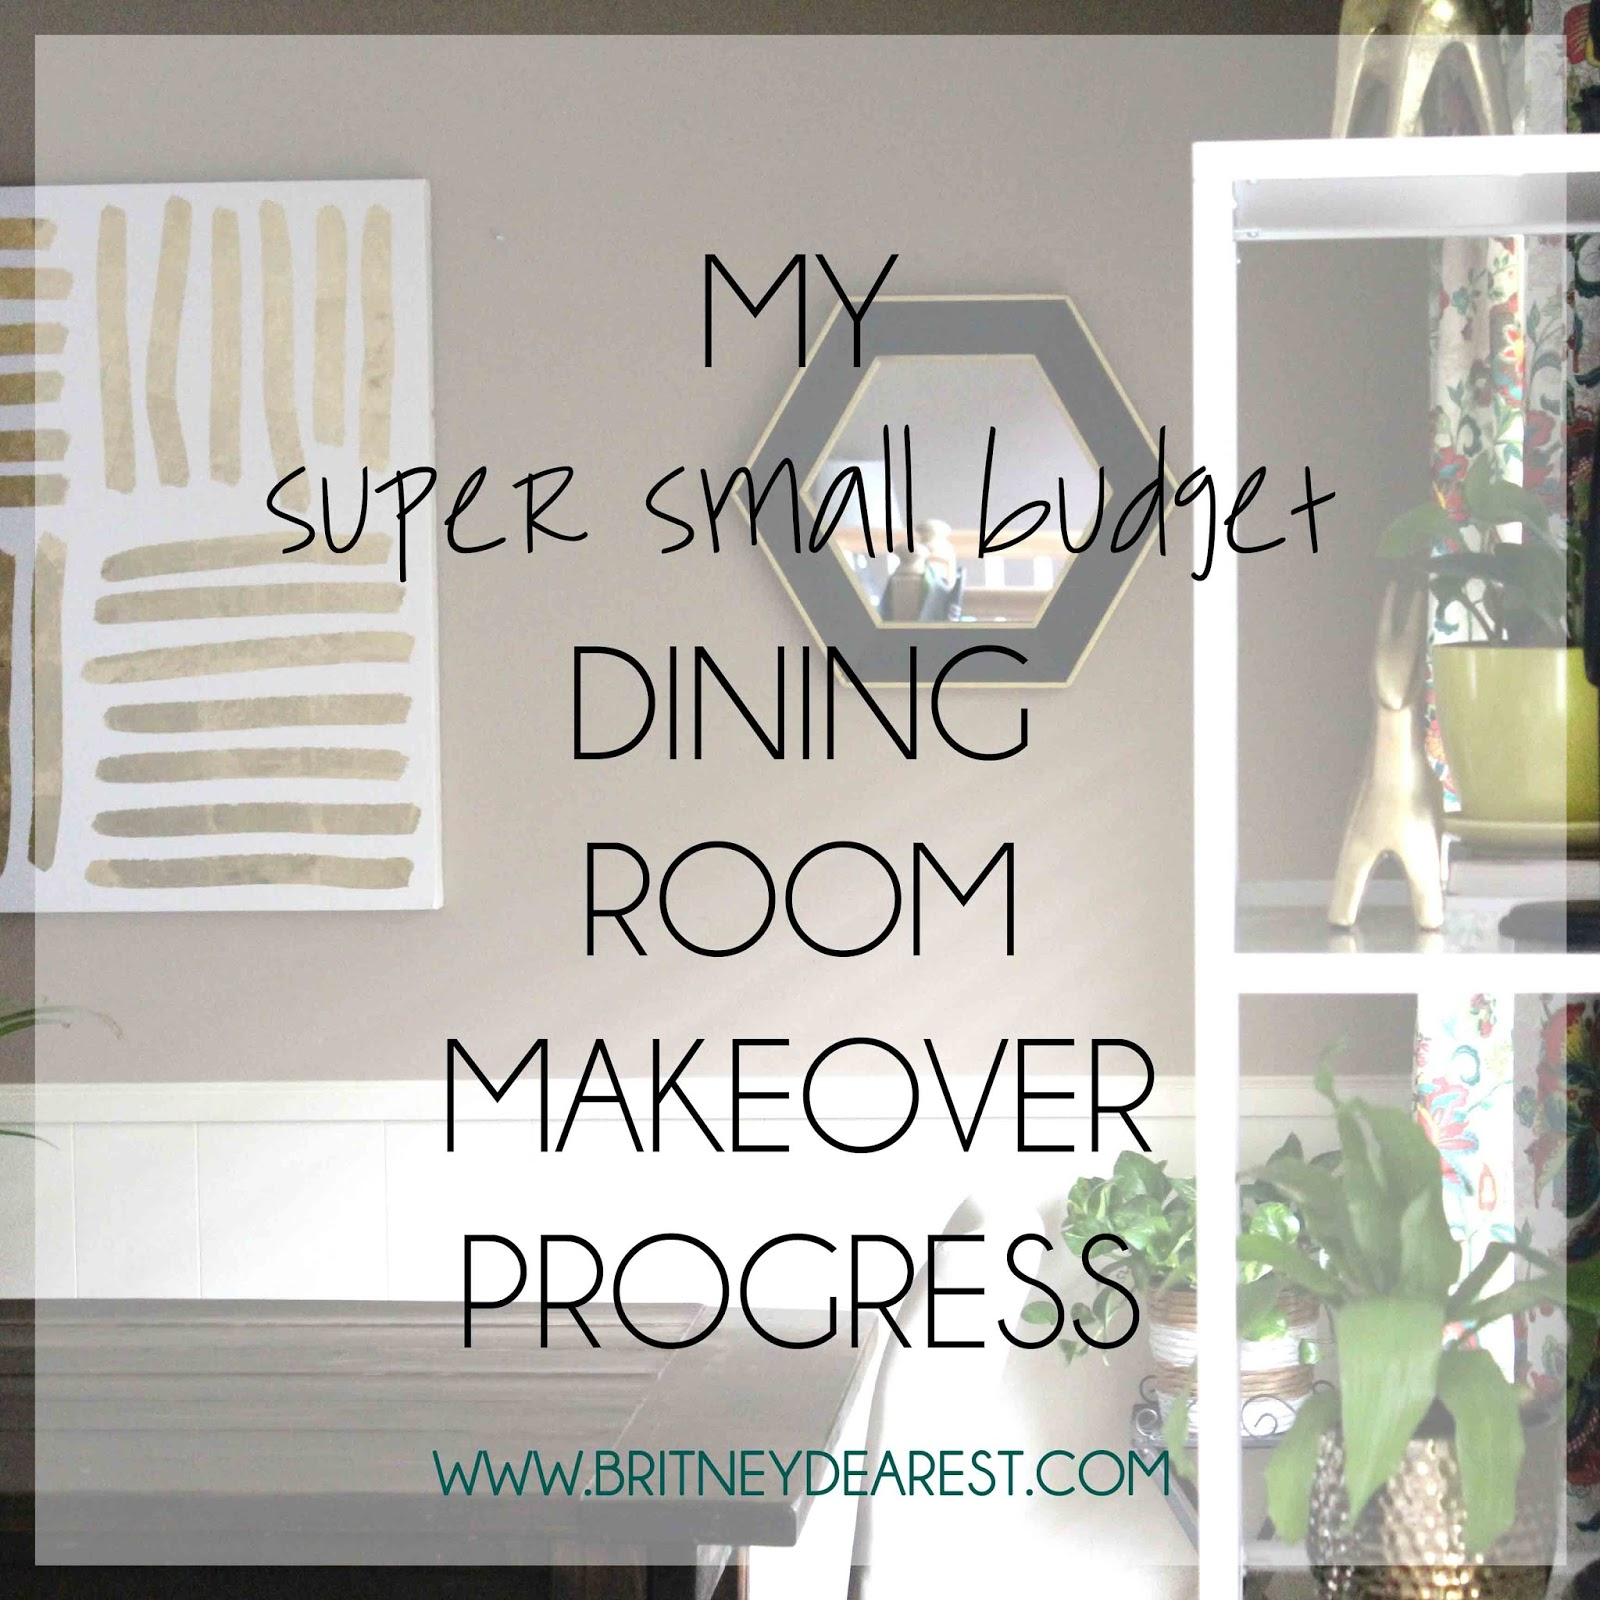 Britney Dearest The Progression of My Super Small Budget Dining